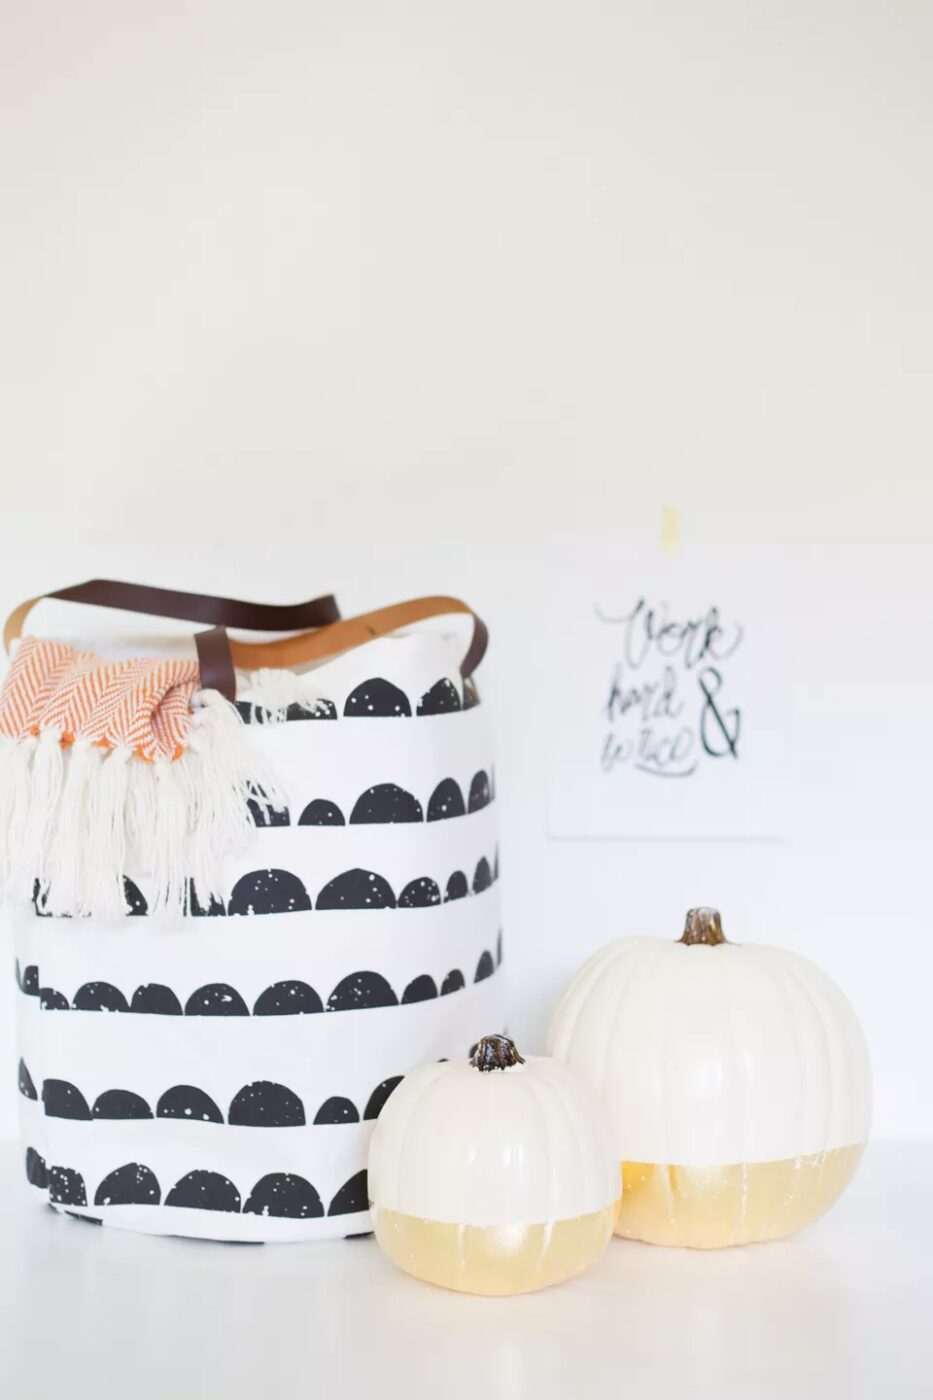 Get Your Home Ready for Fall: 15 Amazing DIY Decor Ideas (Part 2)